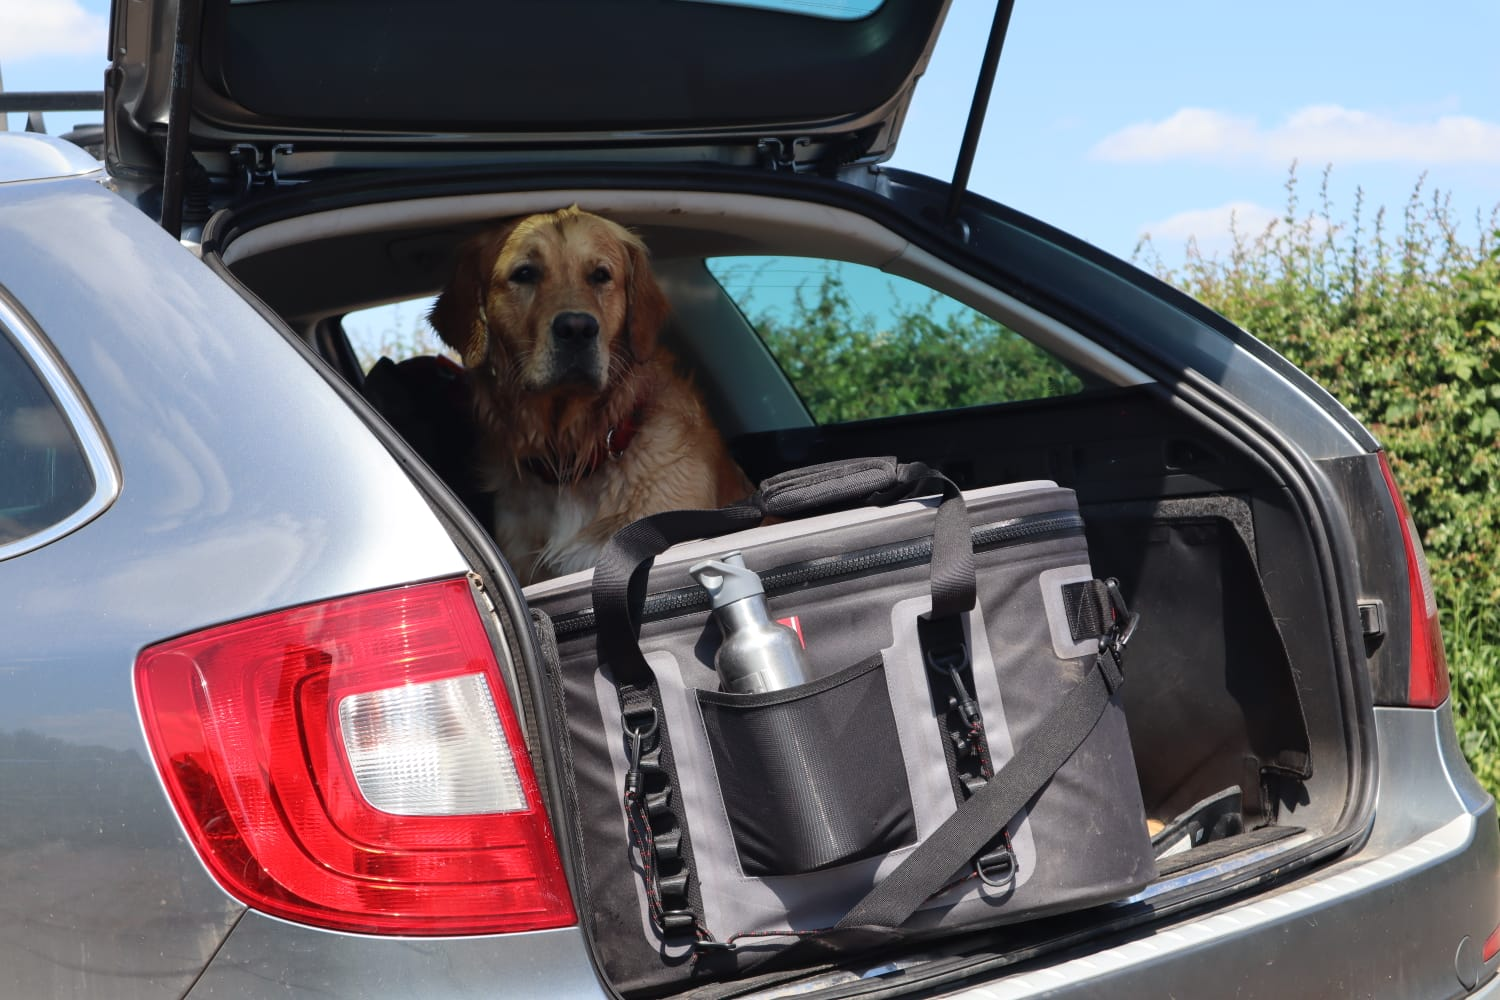 Cooler Bag In A Car With A Dog